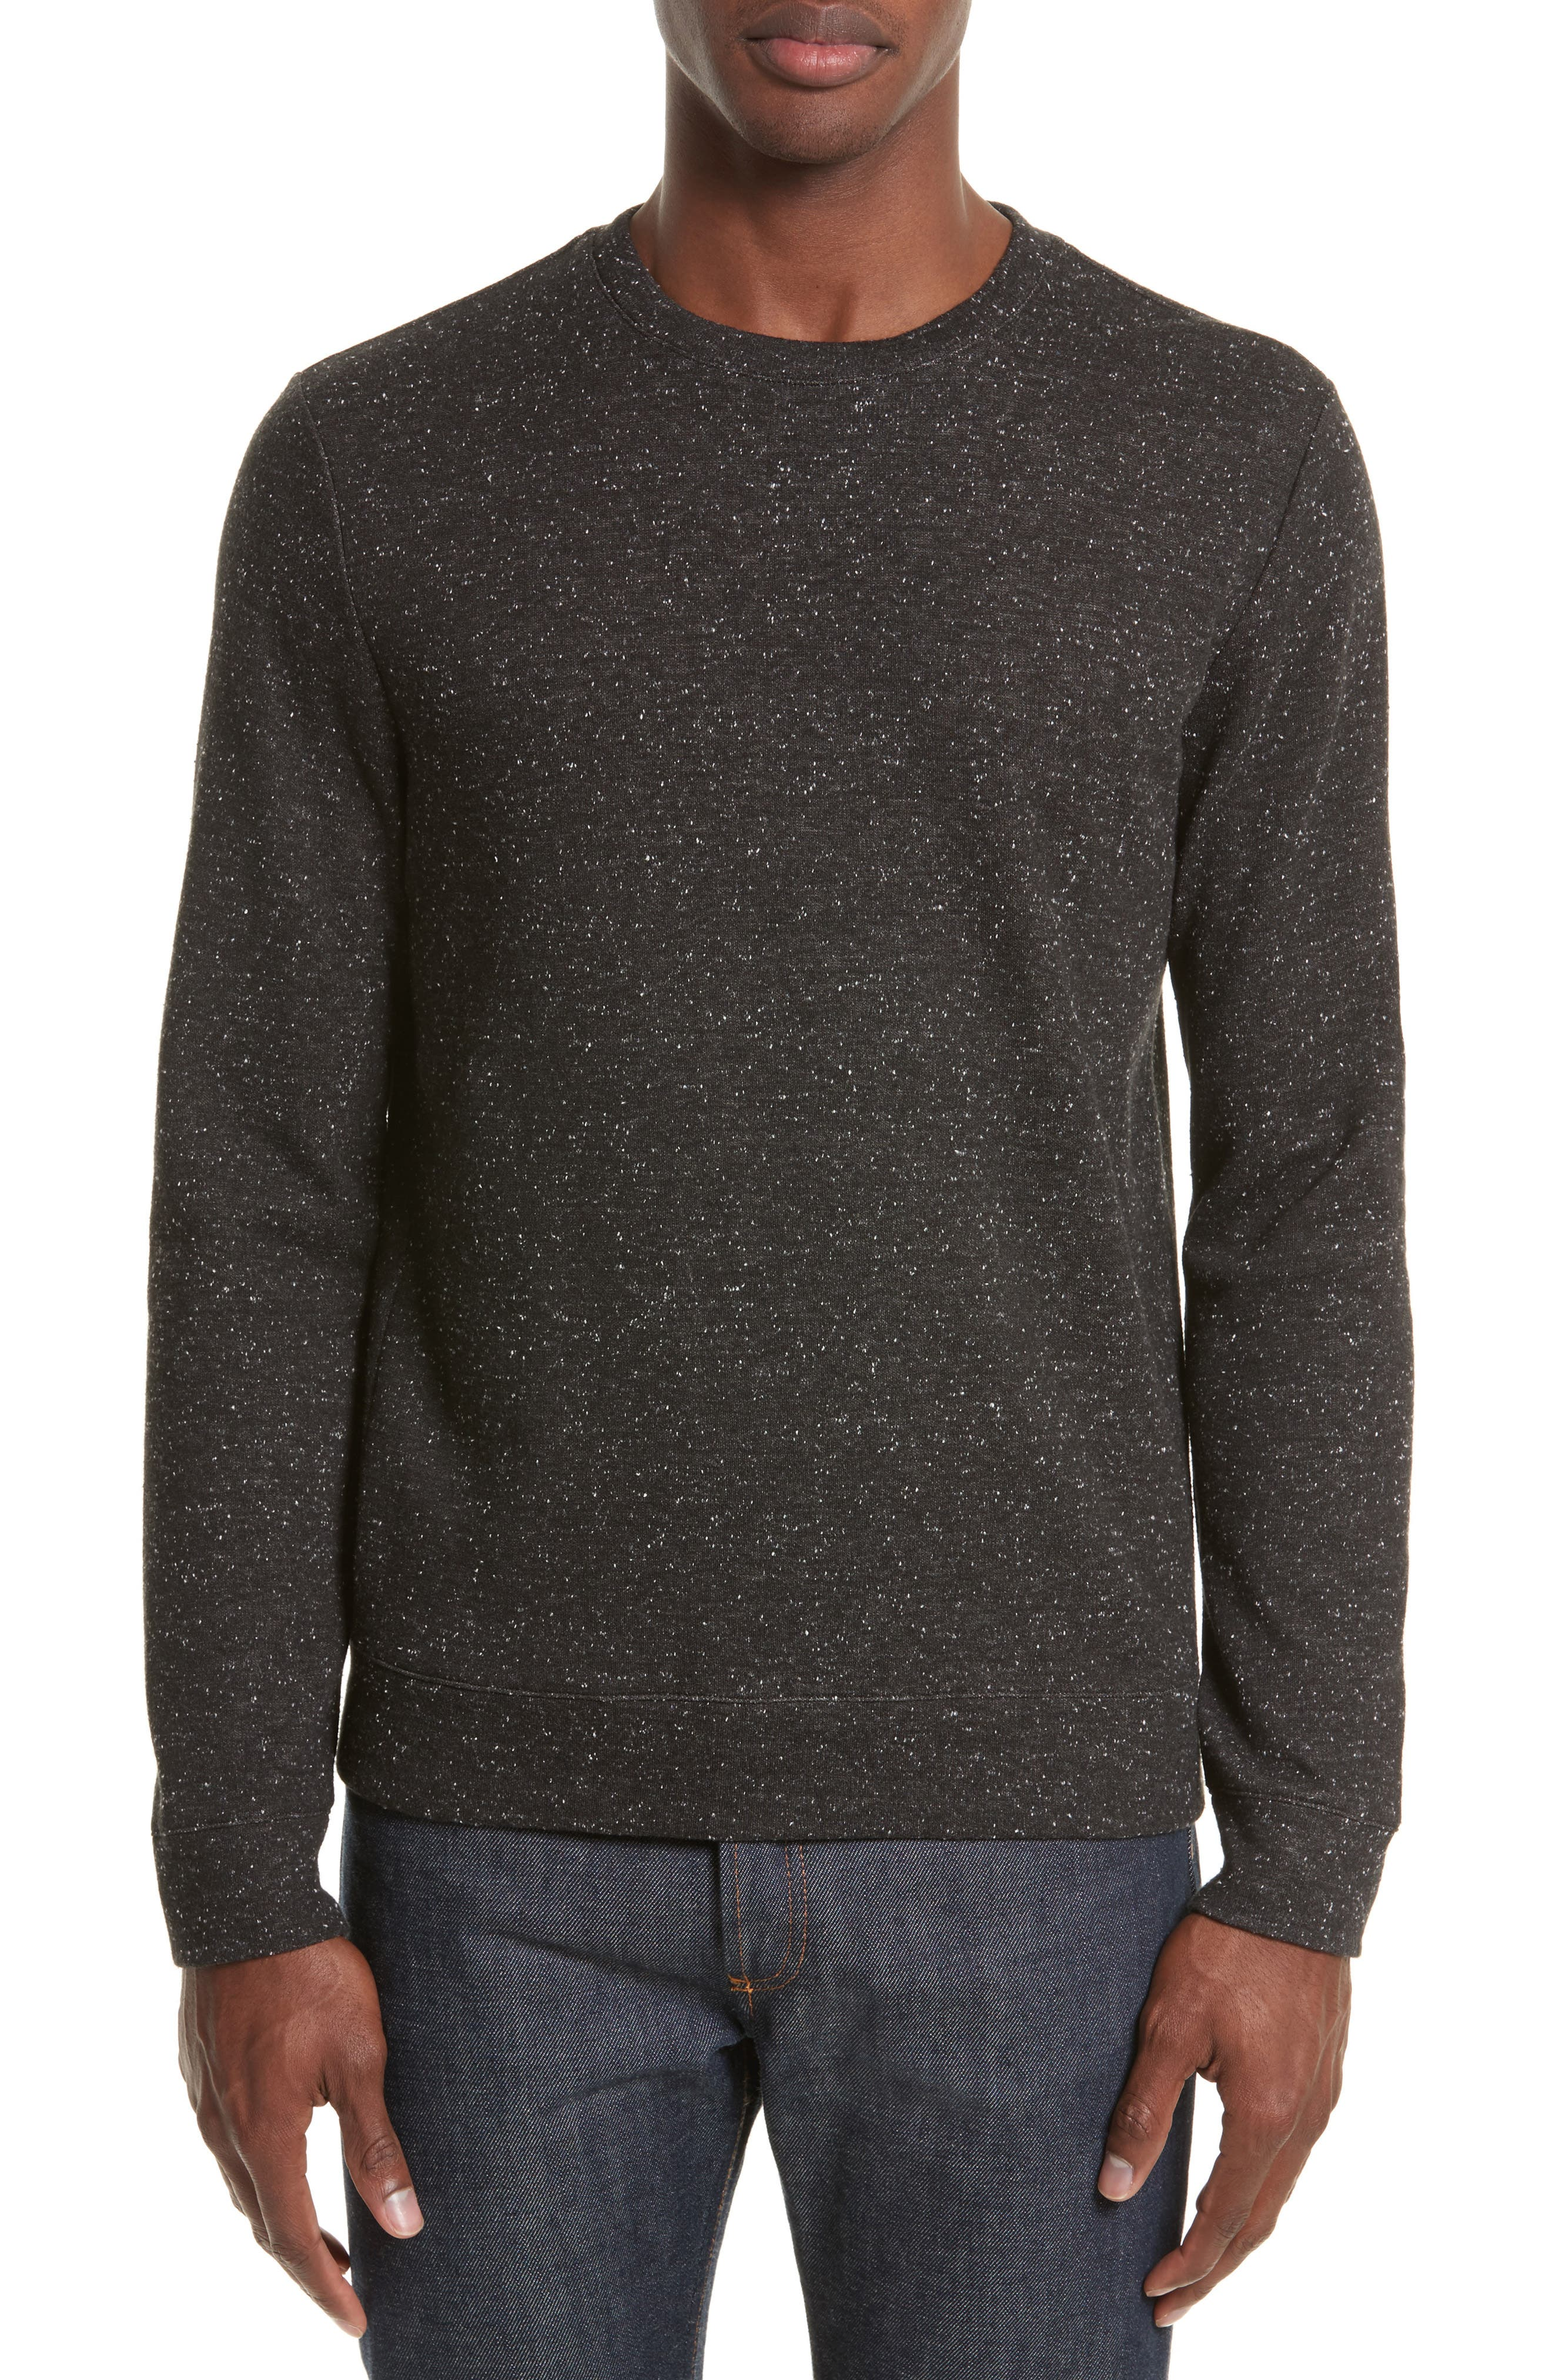 Main Image - A.P.C. Speckle Sweat Track Sweater